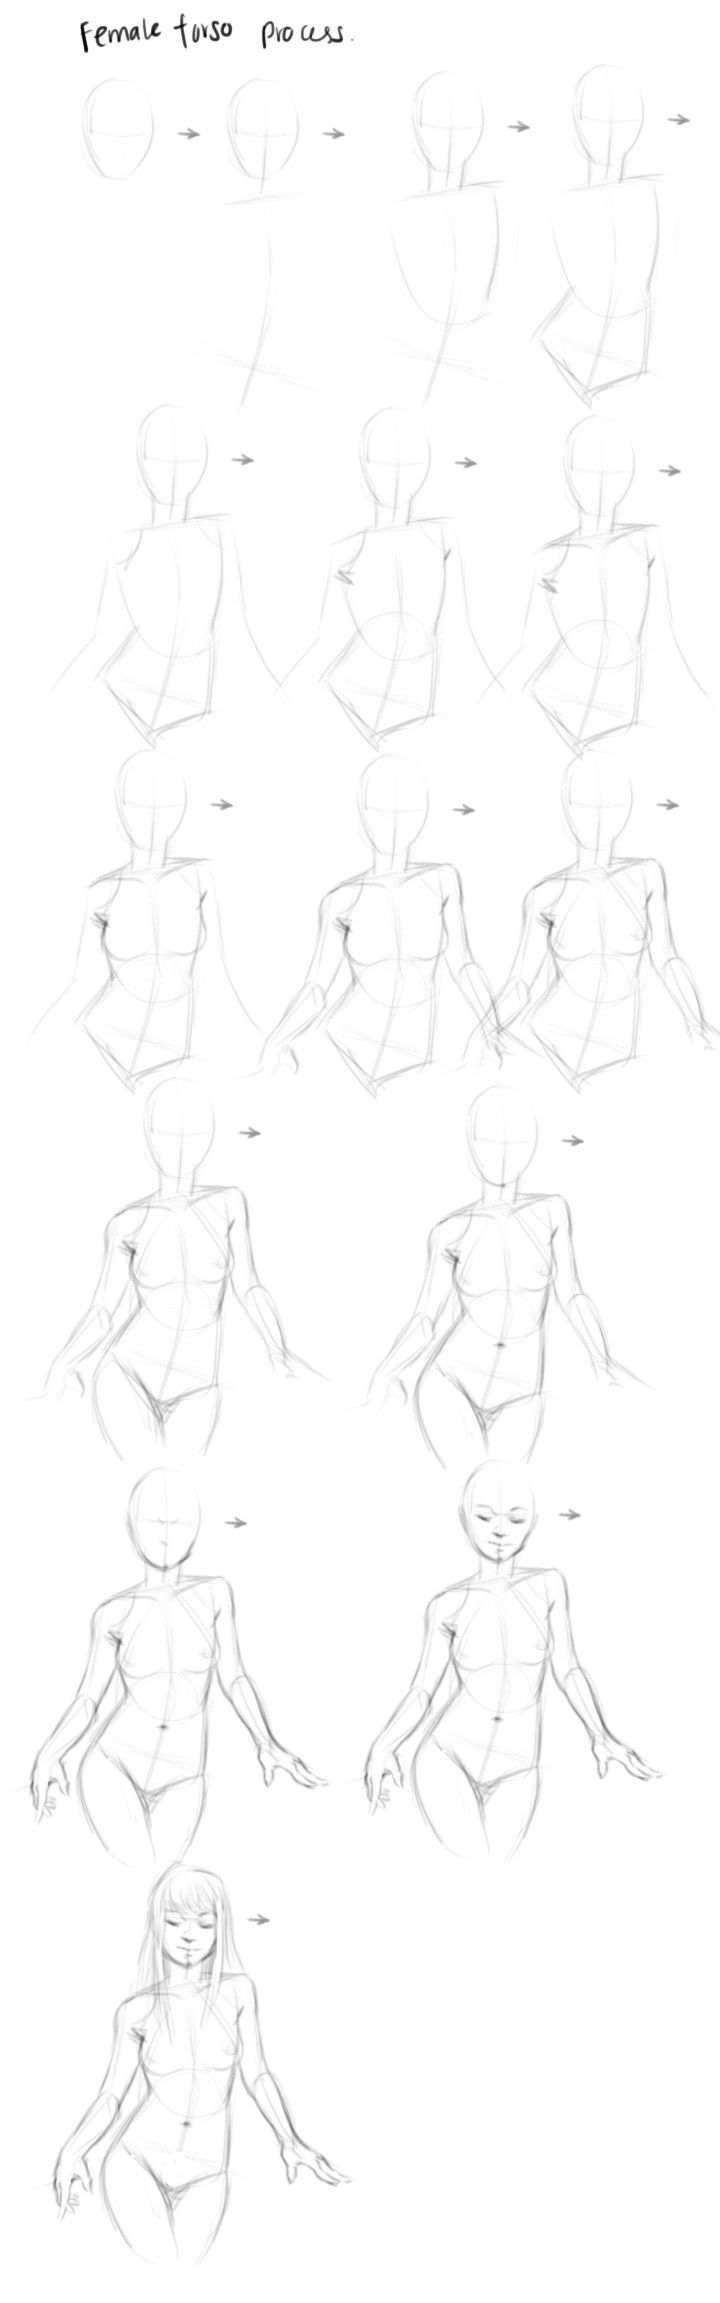 Drawing tutorials - Female torso/breast - Imgur